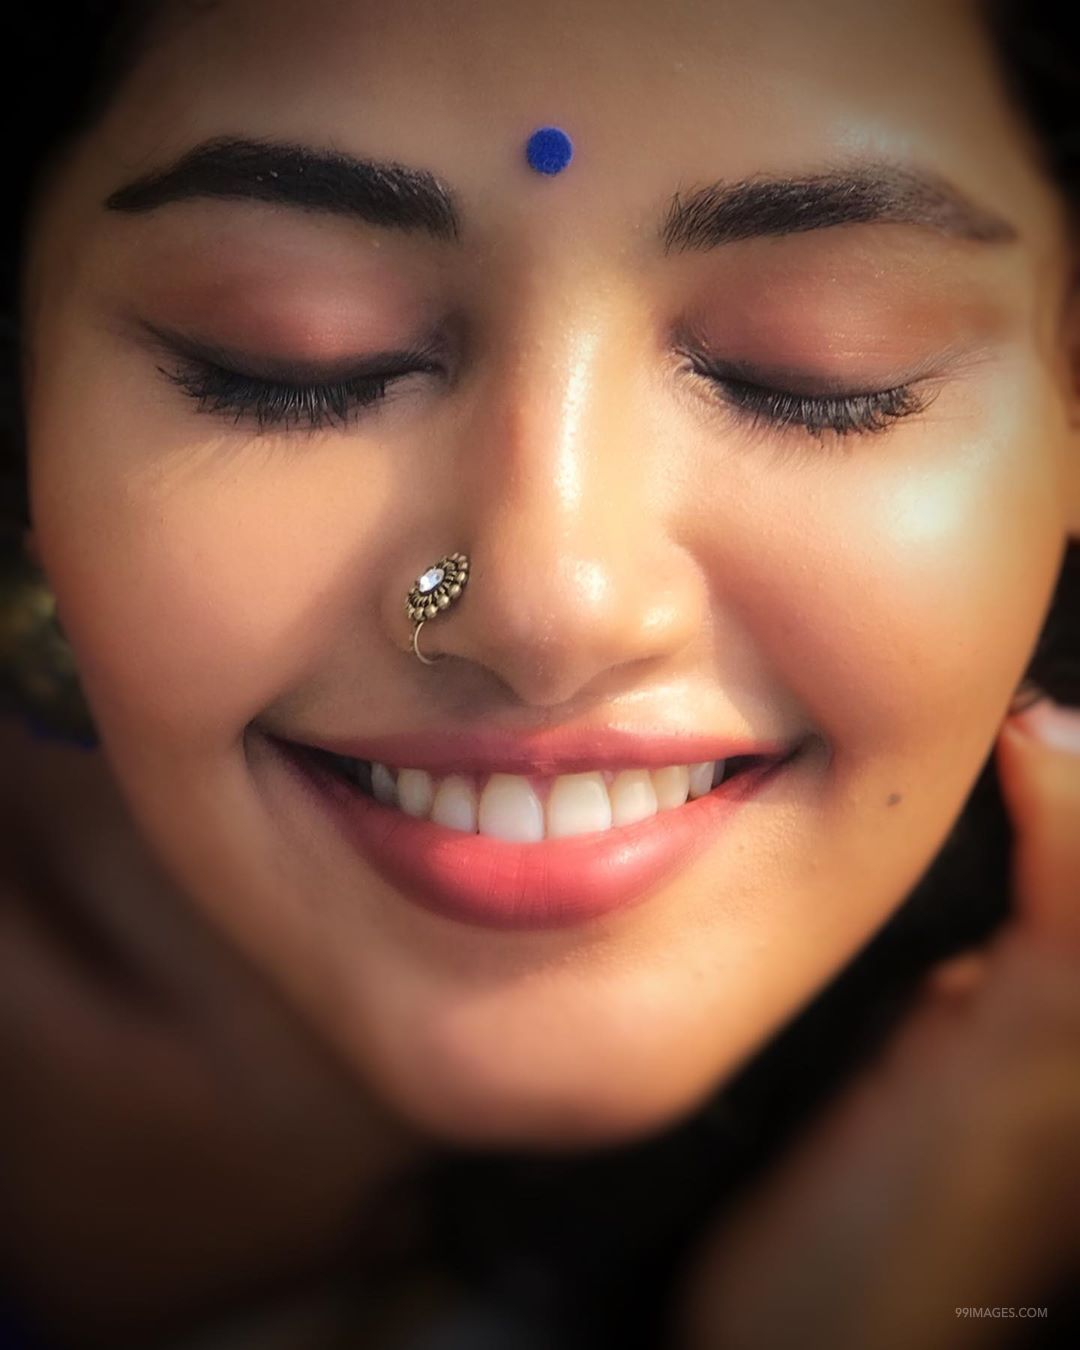 Anupama Parameswaran Hot HD Photos & Mobile Wallpapers, WhatsApp DP (1080p) (99779) - Anupama Parameswaran